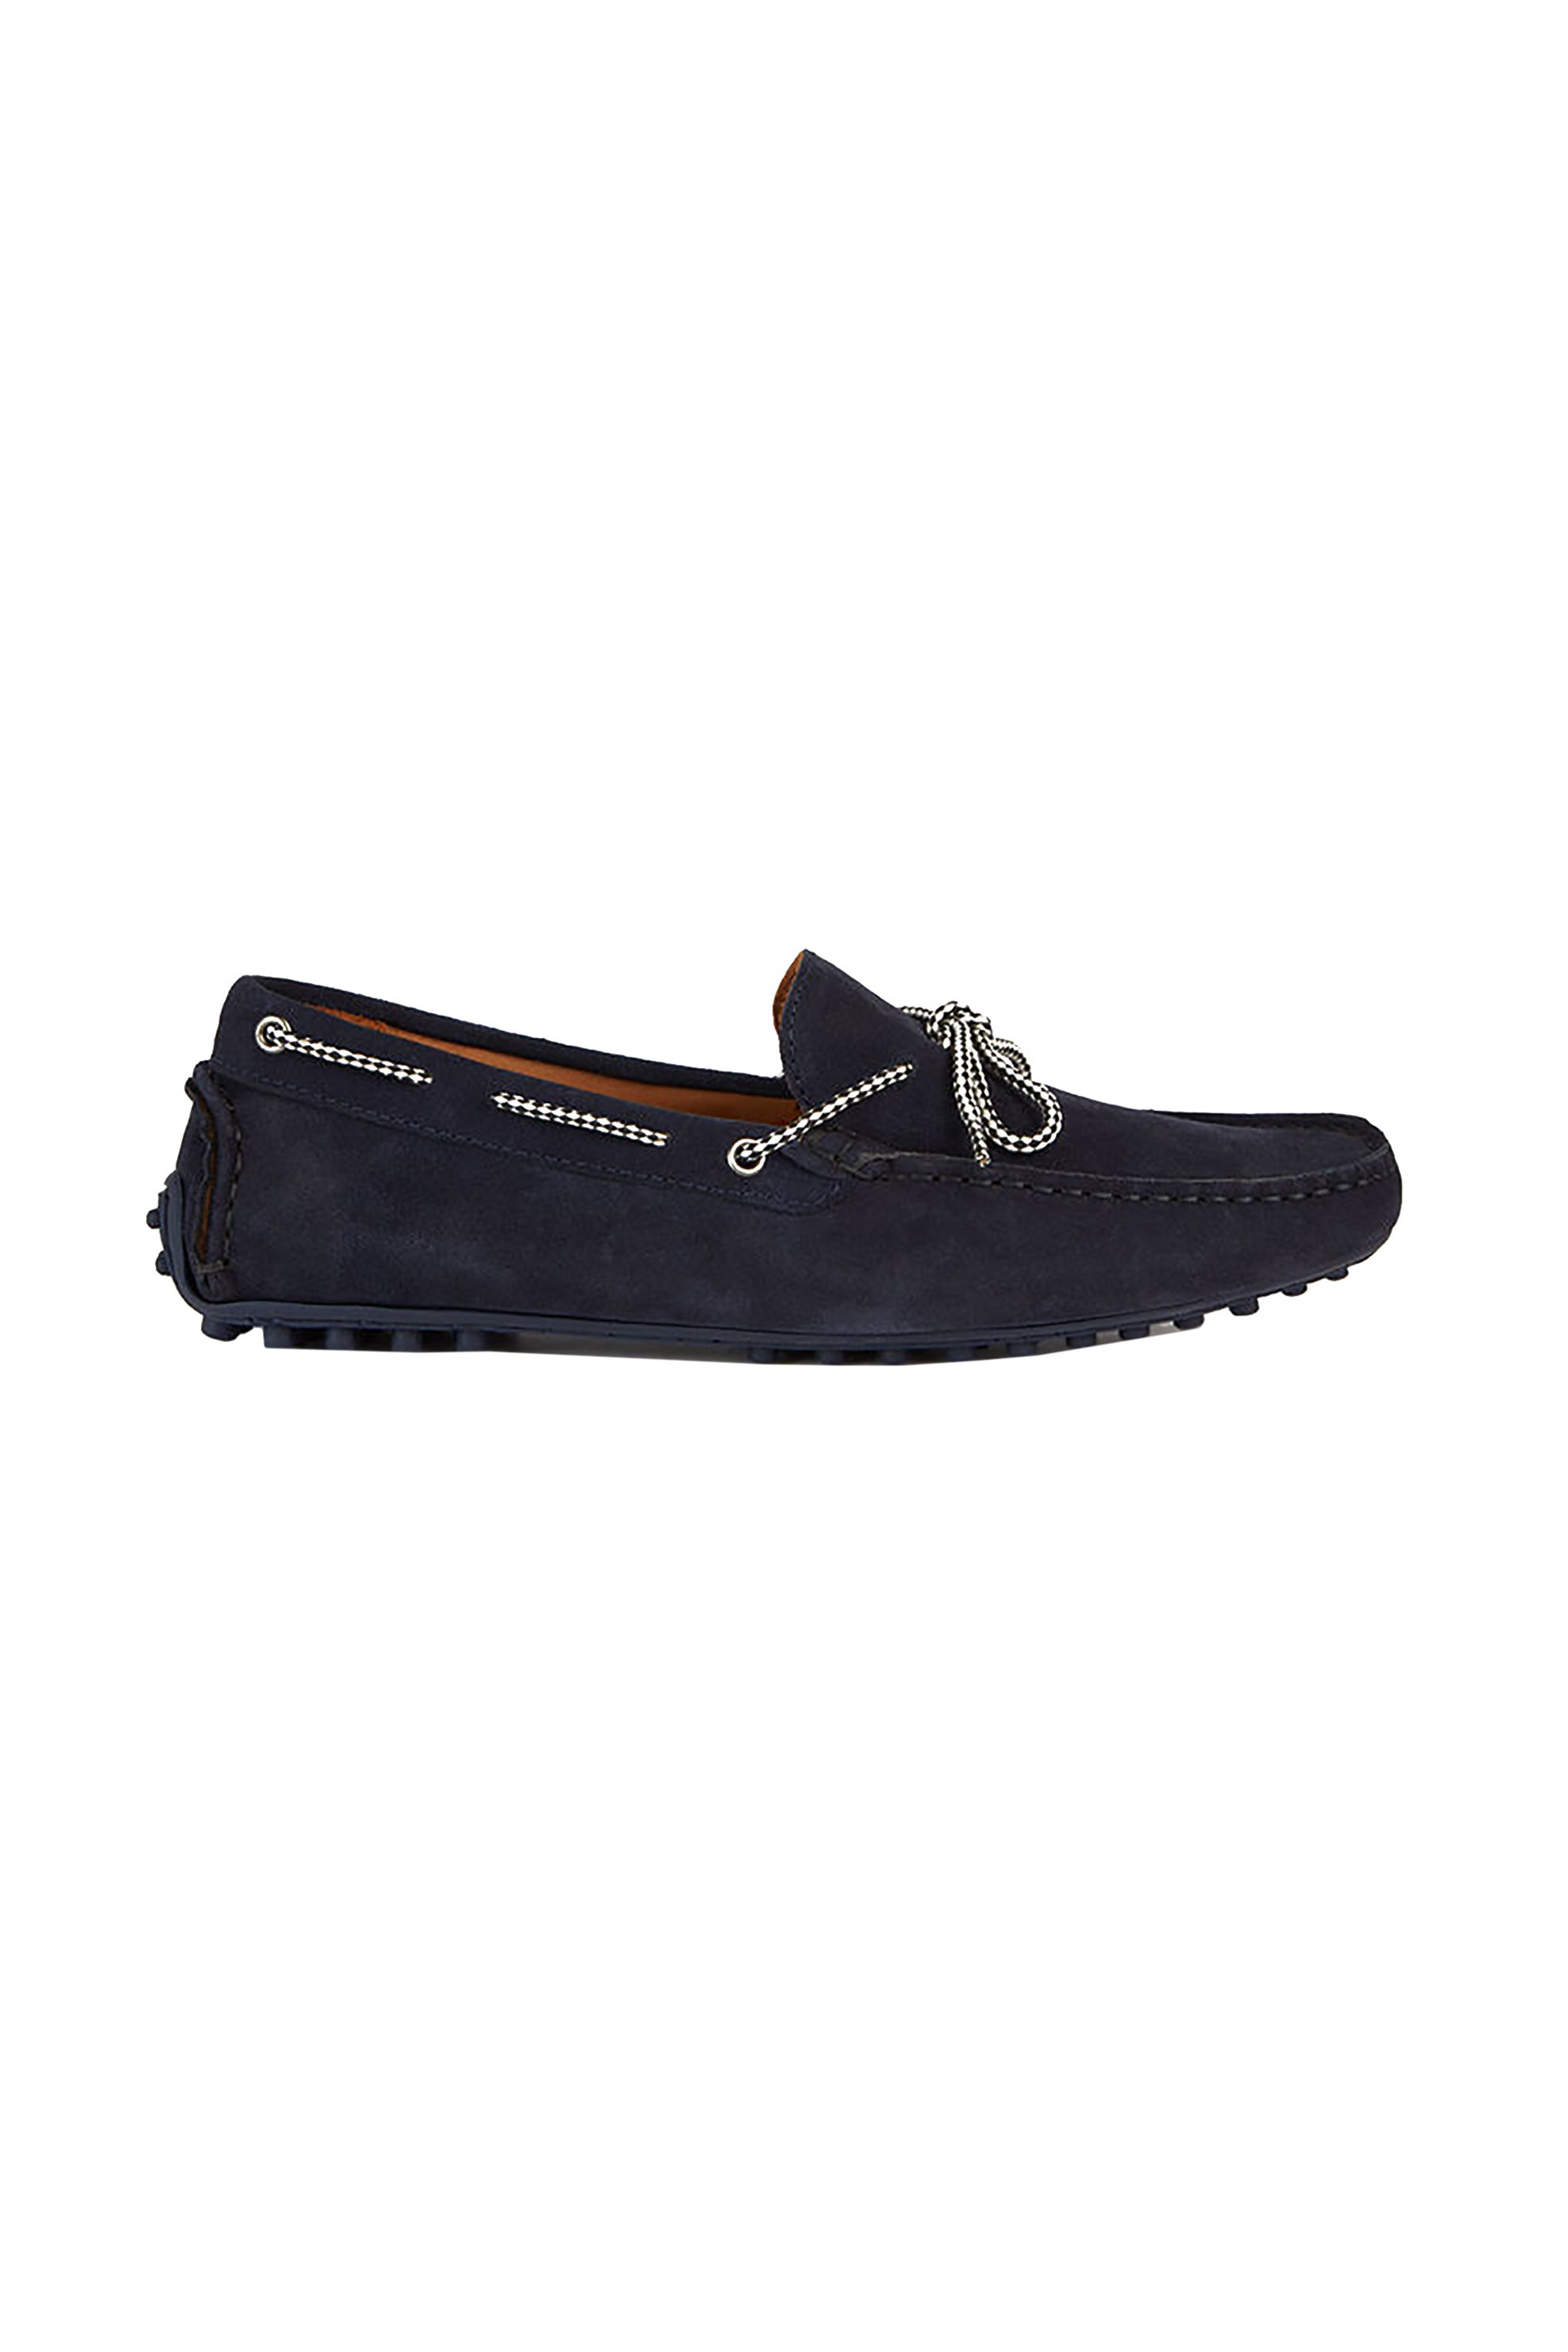 5a965bad61b Notos Trussardi Jeans ανδρικά loafers suede – 77A00169-9Y099999 – Μπλε  Σκούρο